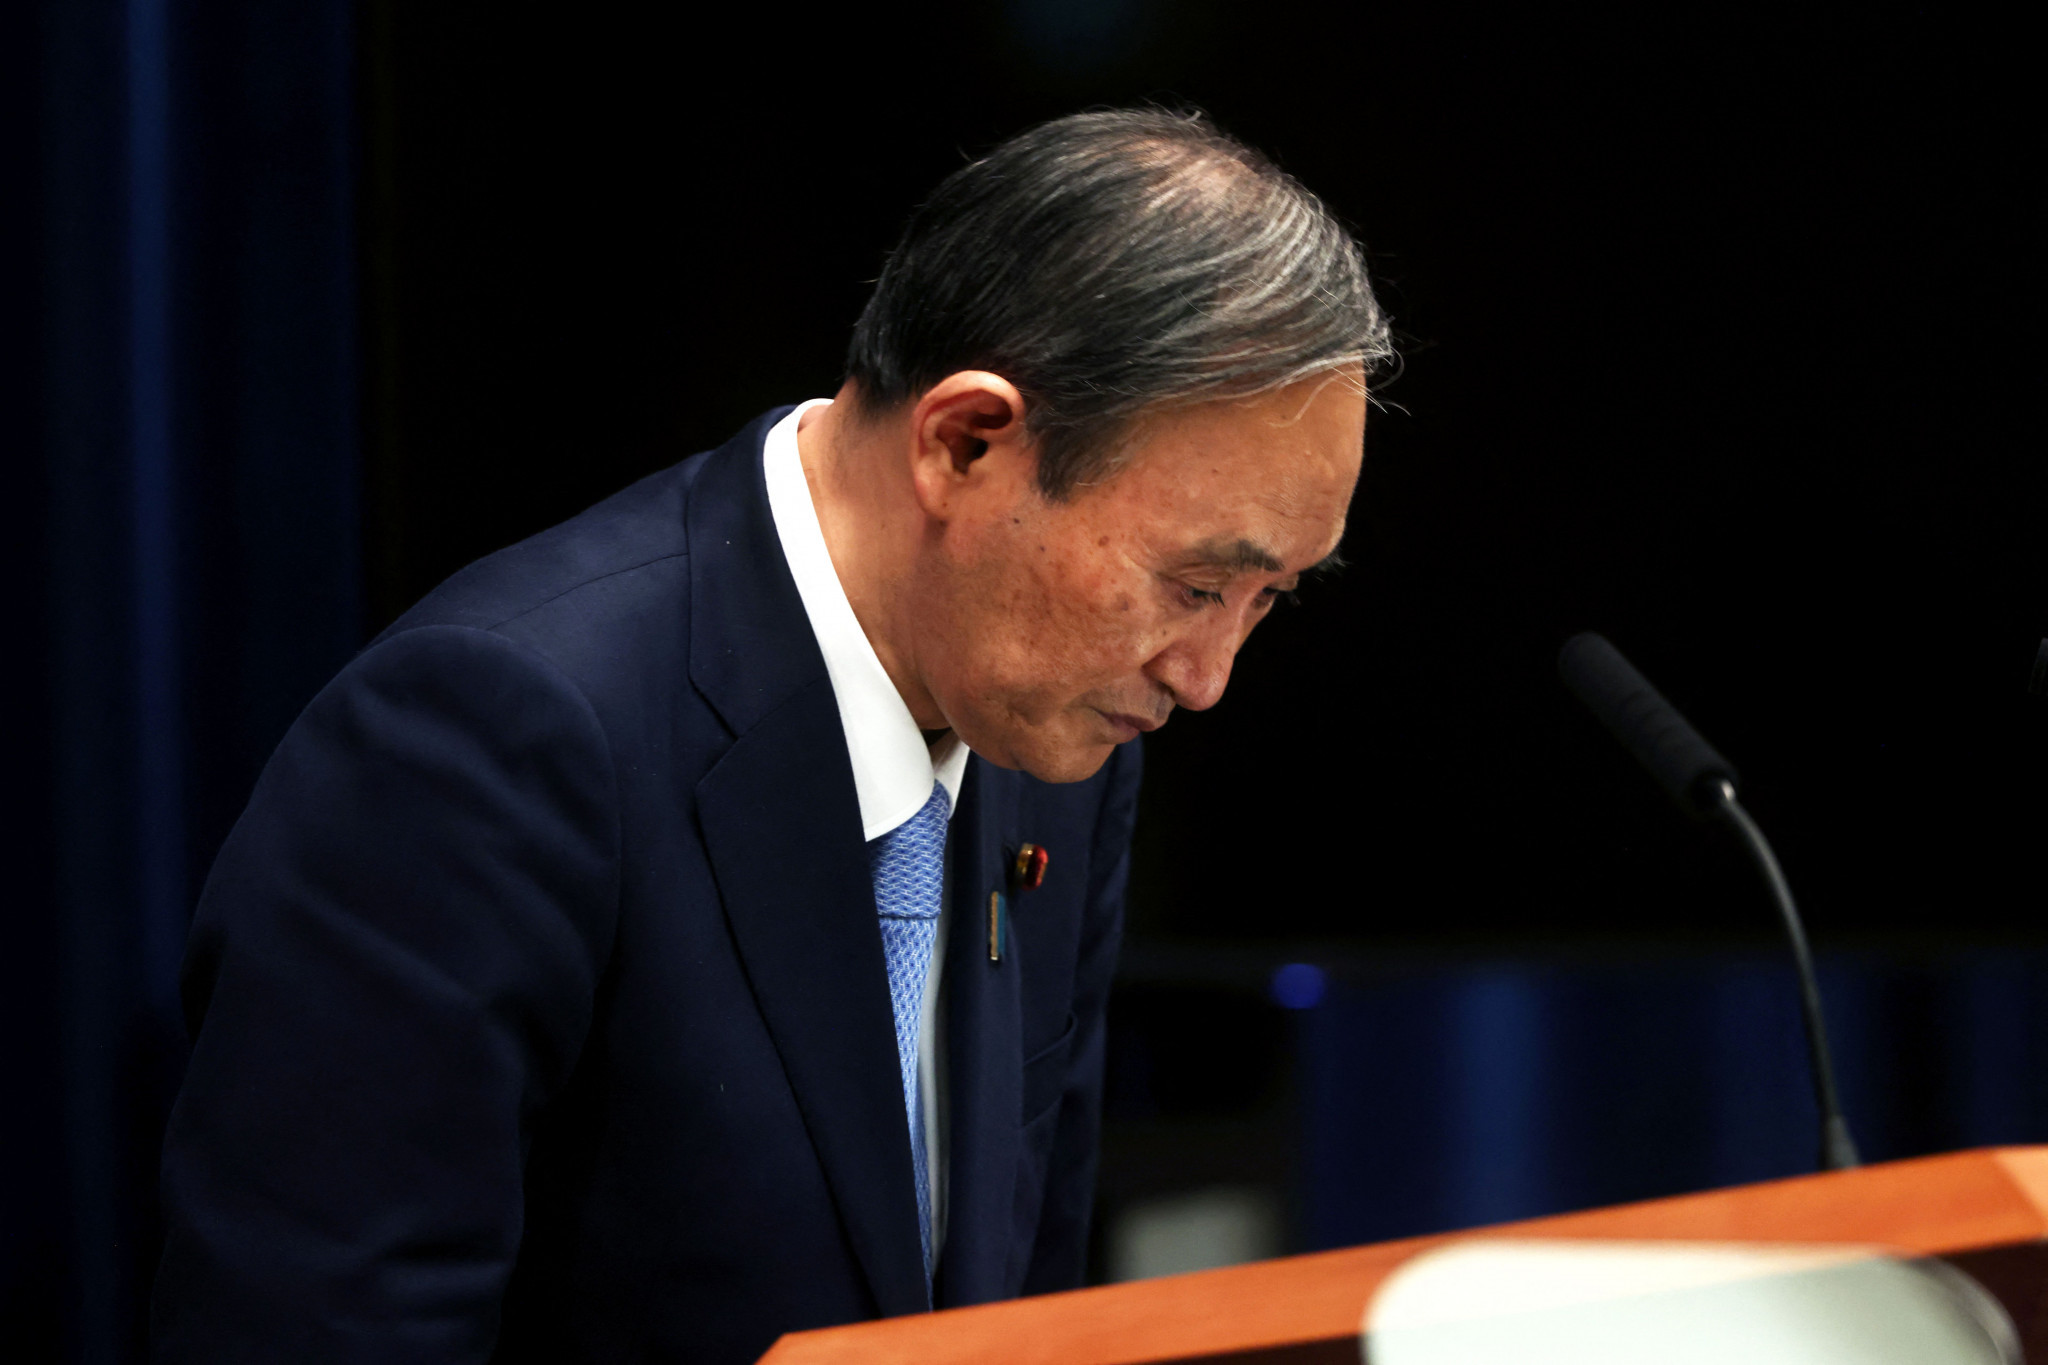 Suga will not hold reception for guests at Tokyo 2020 to reduce COVID-19 risks